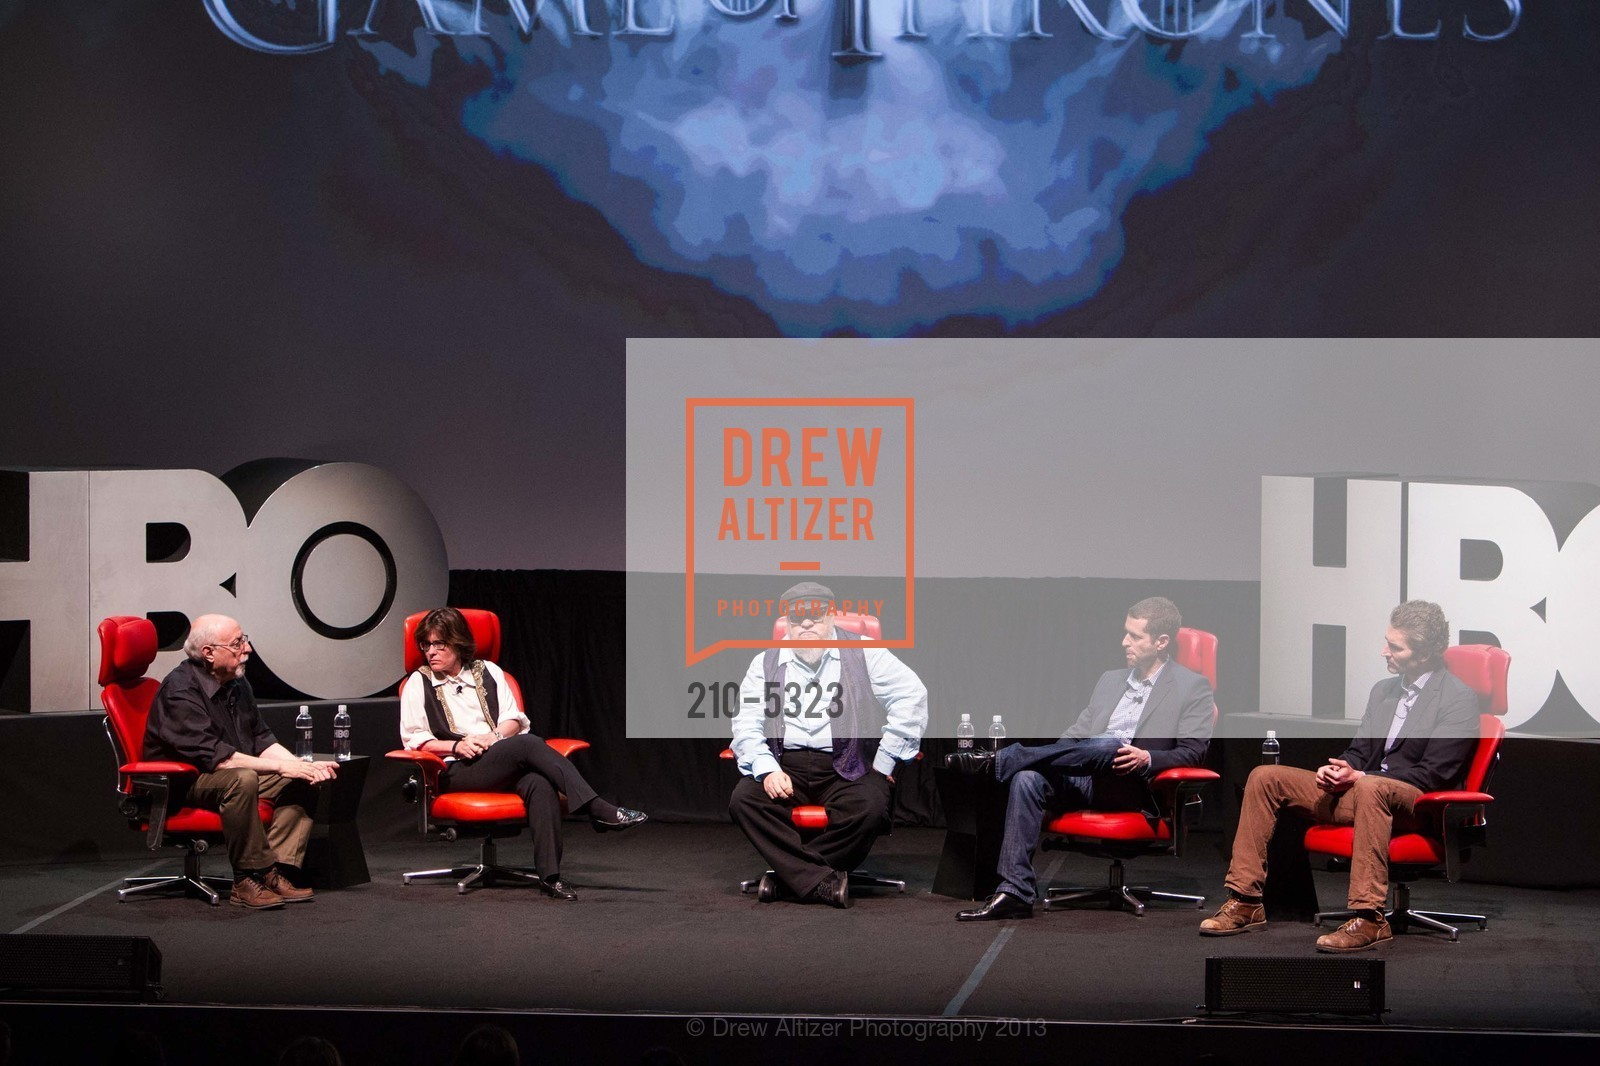 Walt Mossberg, Kara Swisher, George R.R. Martin, D.B. Weiss, David Benioff, Photo #210-5323